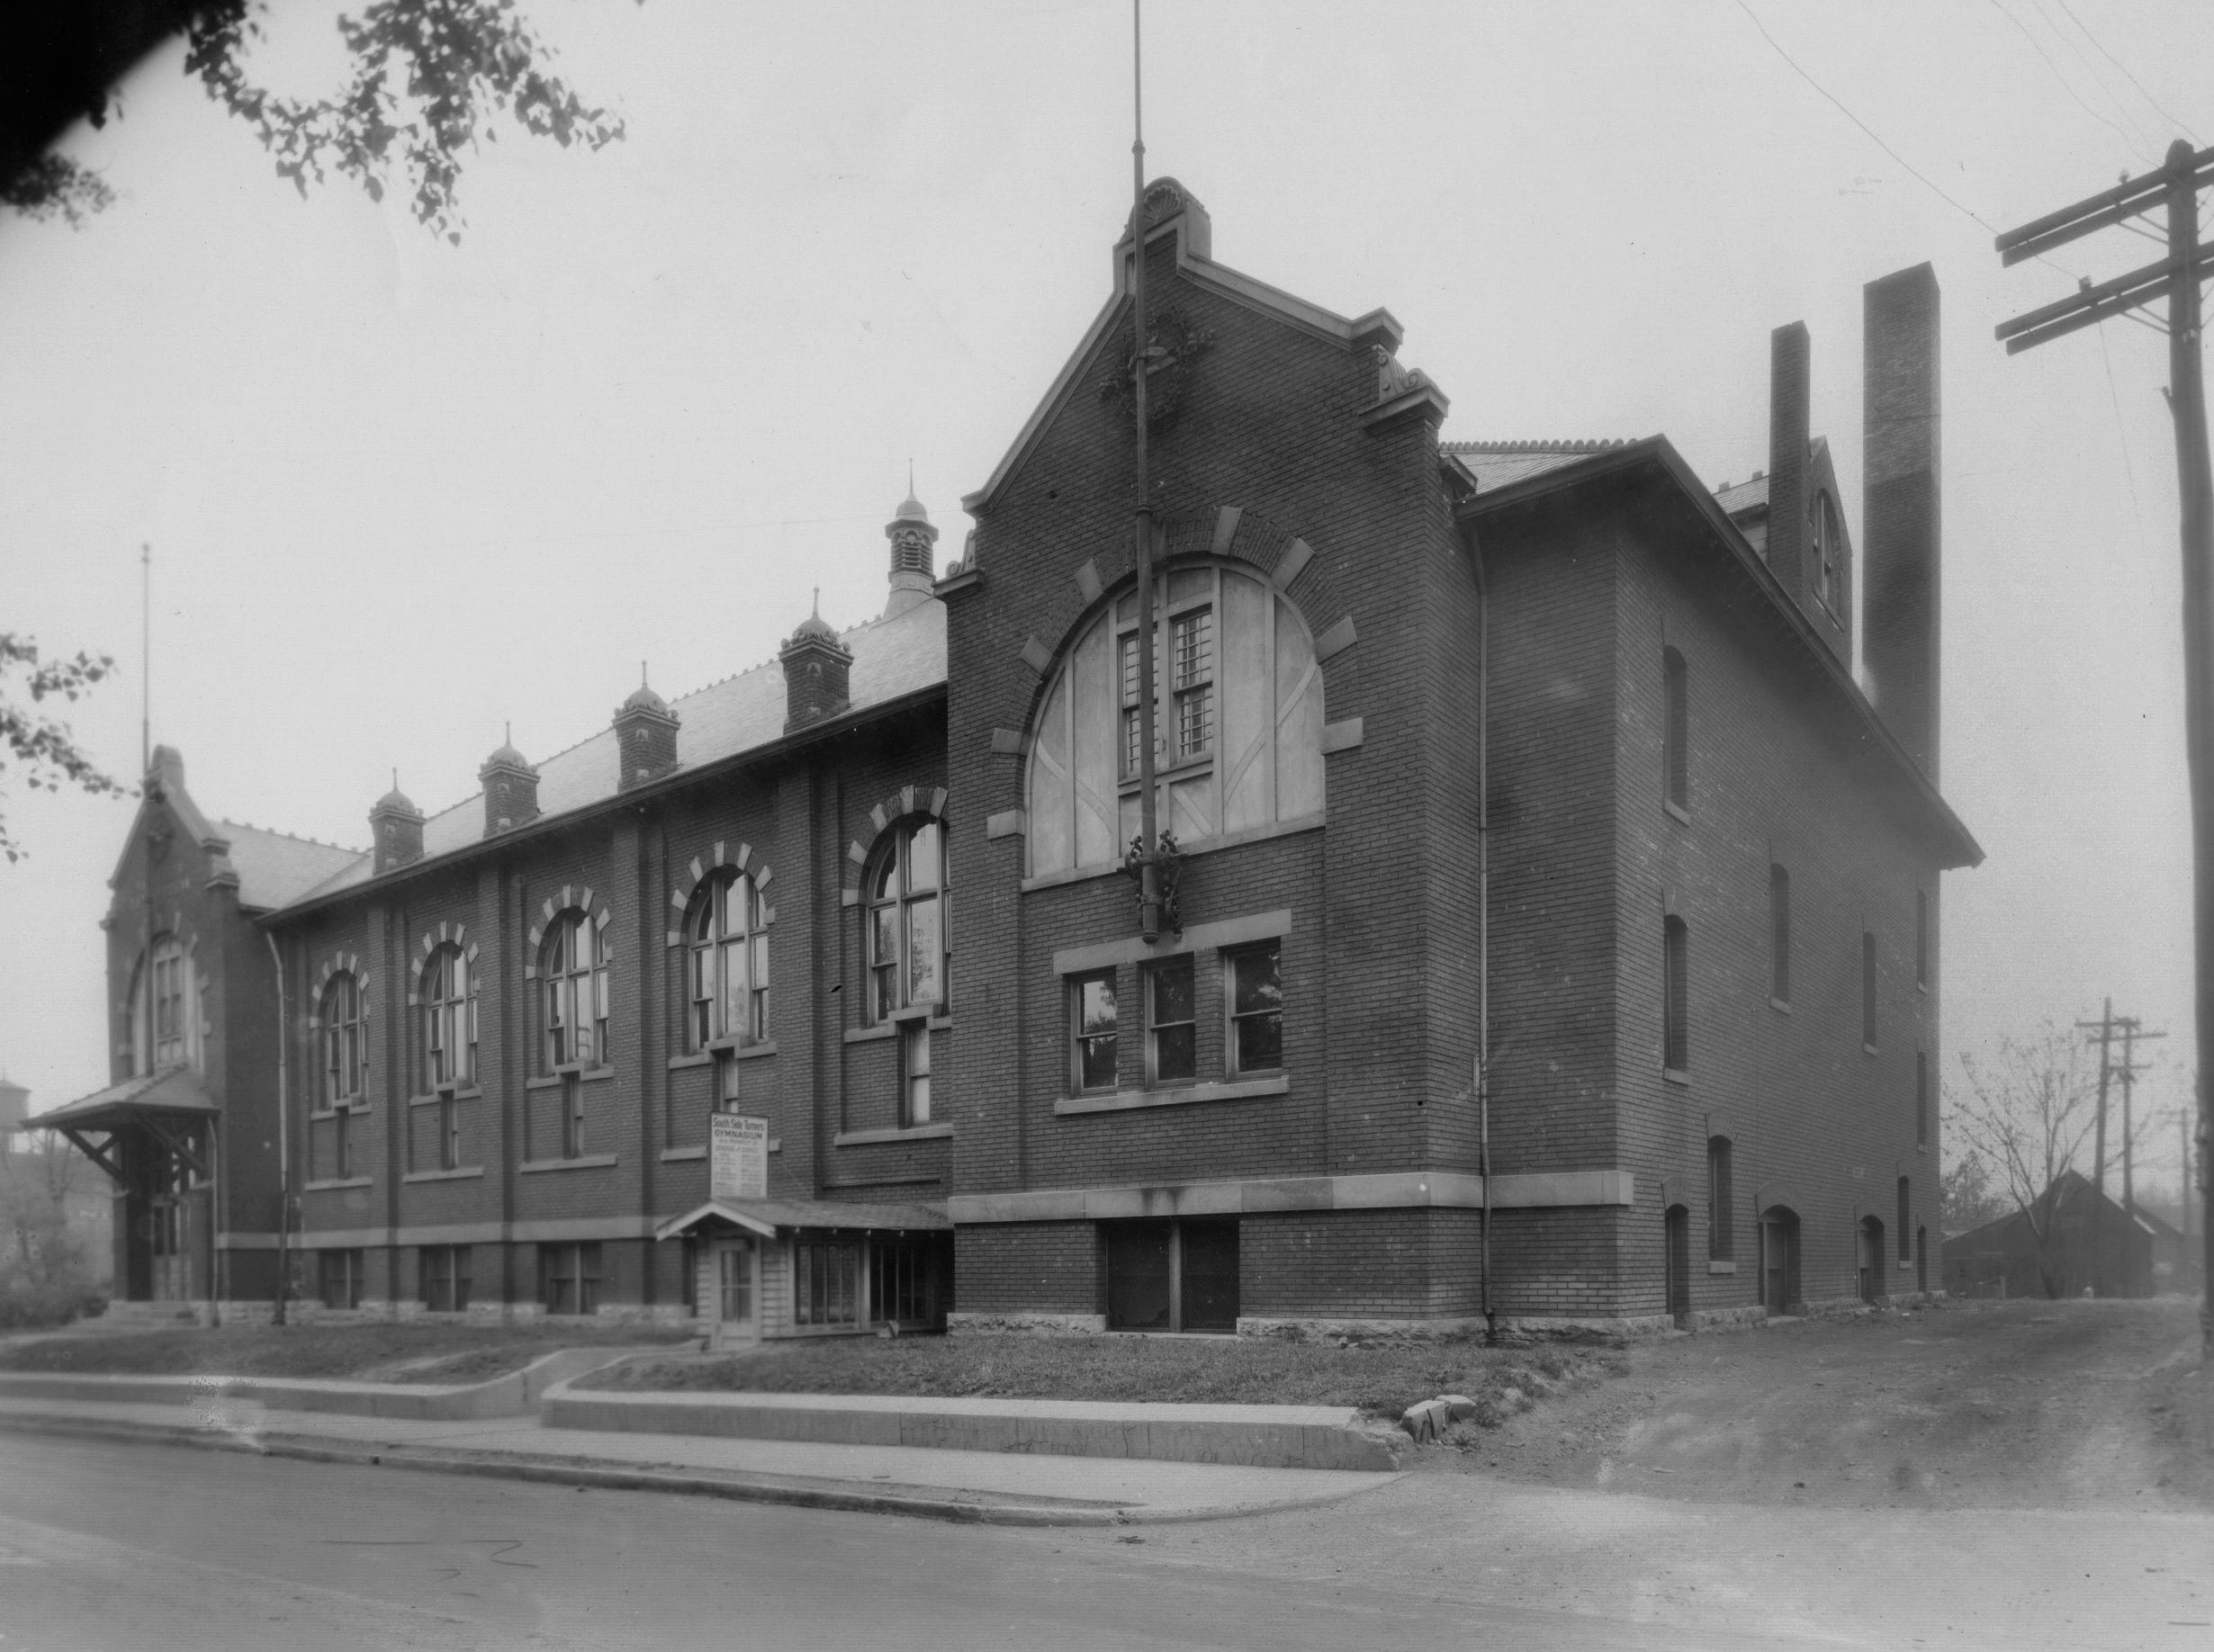 Southside Turners building at 306 Prospect Street, January 4, 1929.  It opened in 1900 as an athletic club and closed in 1975. It features a gym on the upper floor. By 1976 it had no roof and all the windows were broken out. Tony Elrod and Rob Mercer renovated the building and it reopened in 1978 as the Madison Avenue Athletic Club, hosting amateur basketball games.